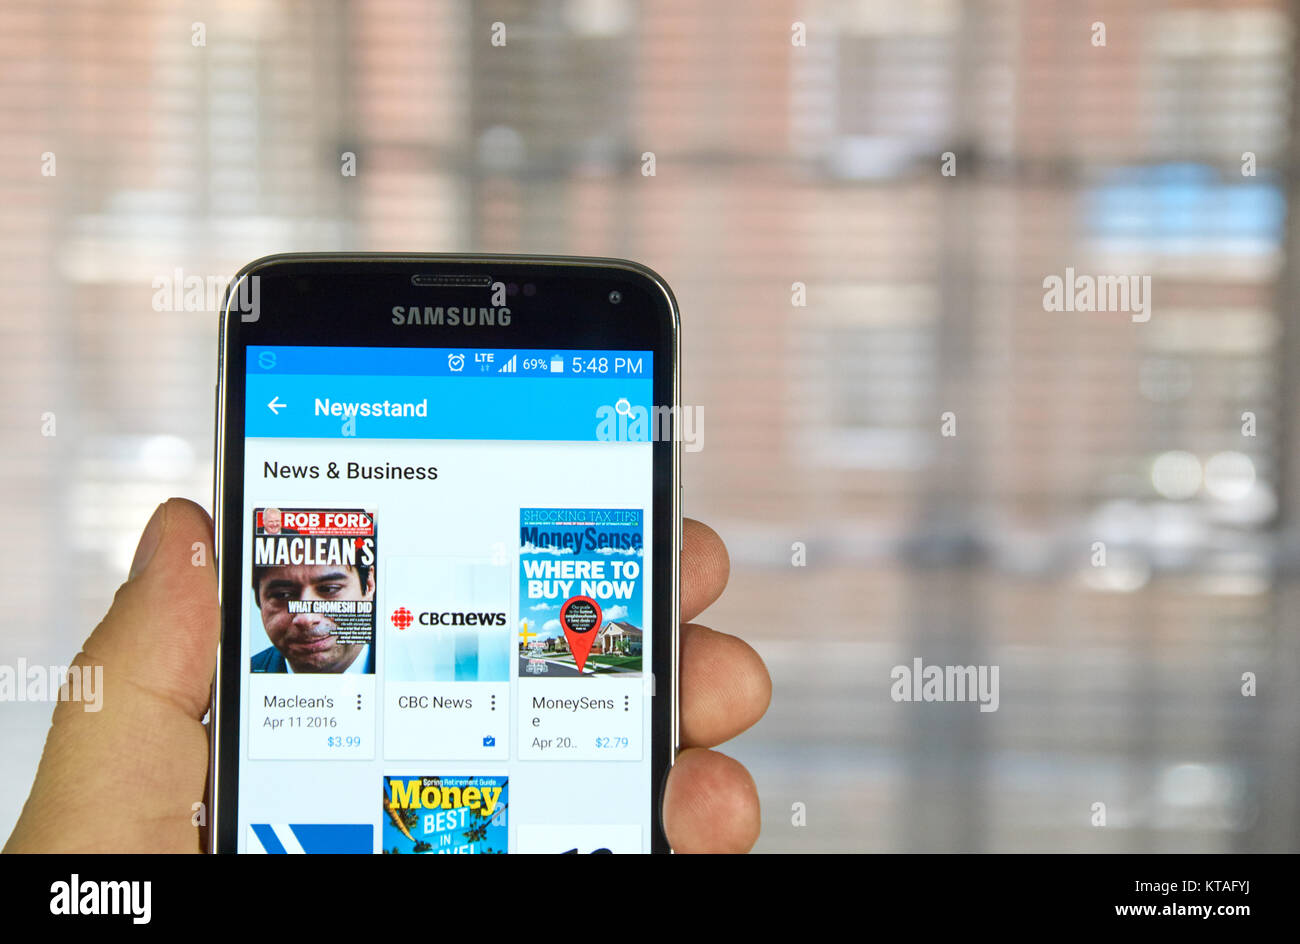 MONTREAL, CANADA - APRIL 5, 2016 : Google Play Newsstand on